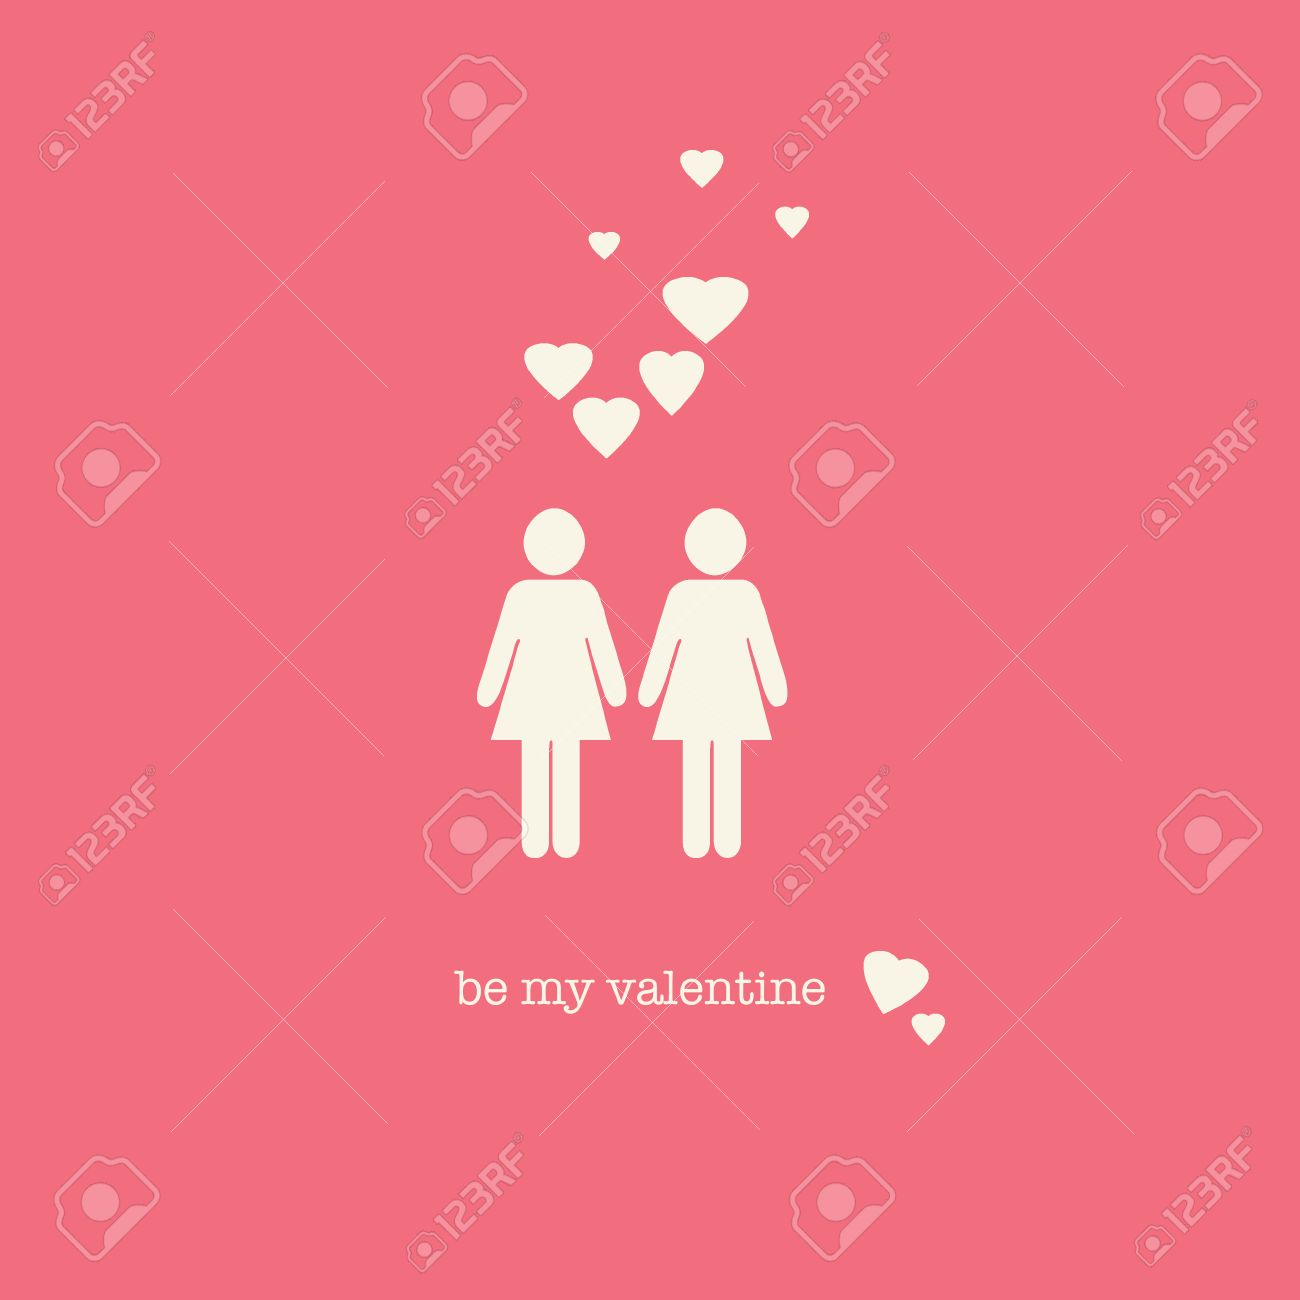 A Sweet Valentines Day Card With A Lesbian Couple Figures And – Lesbian Valentines Day Cards